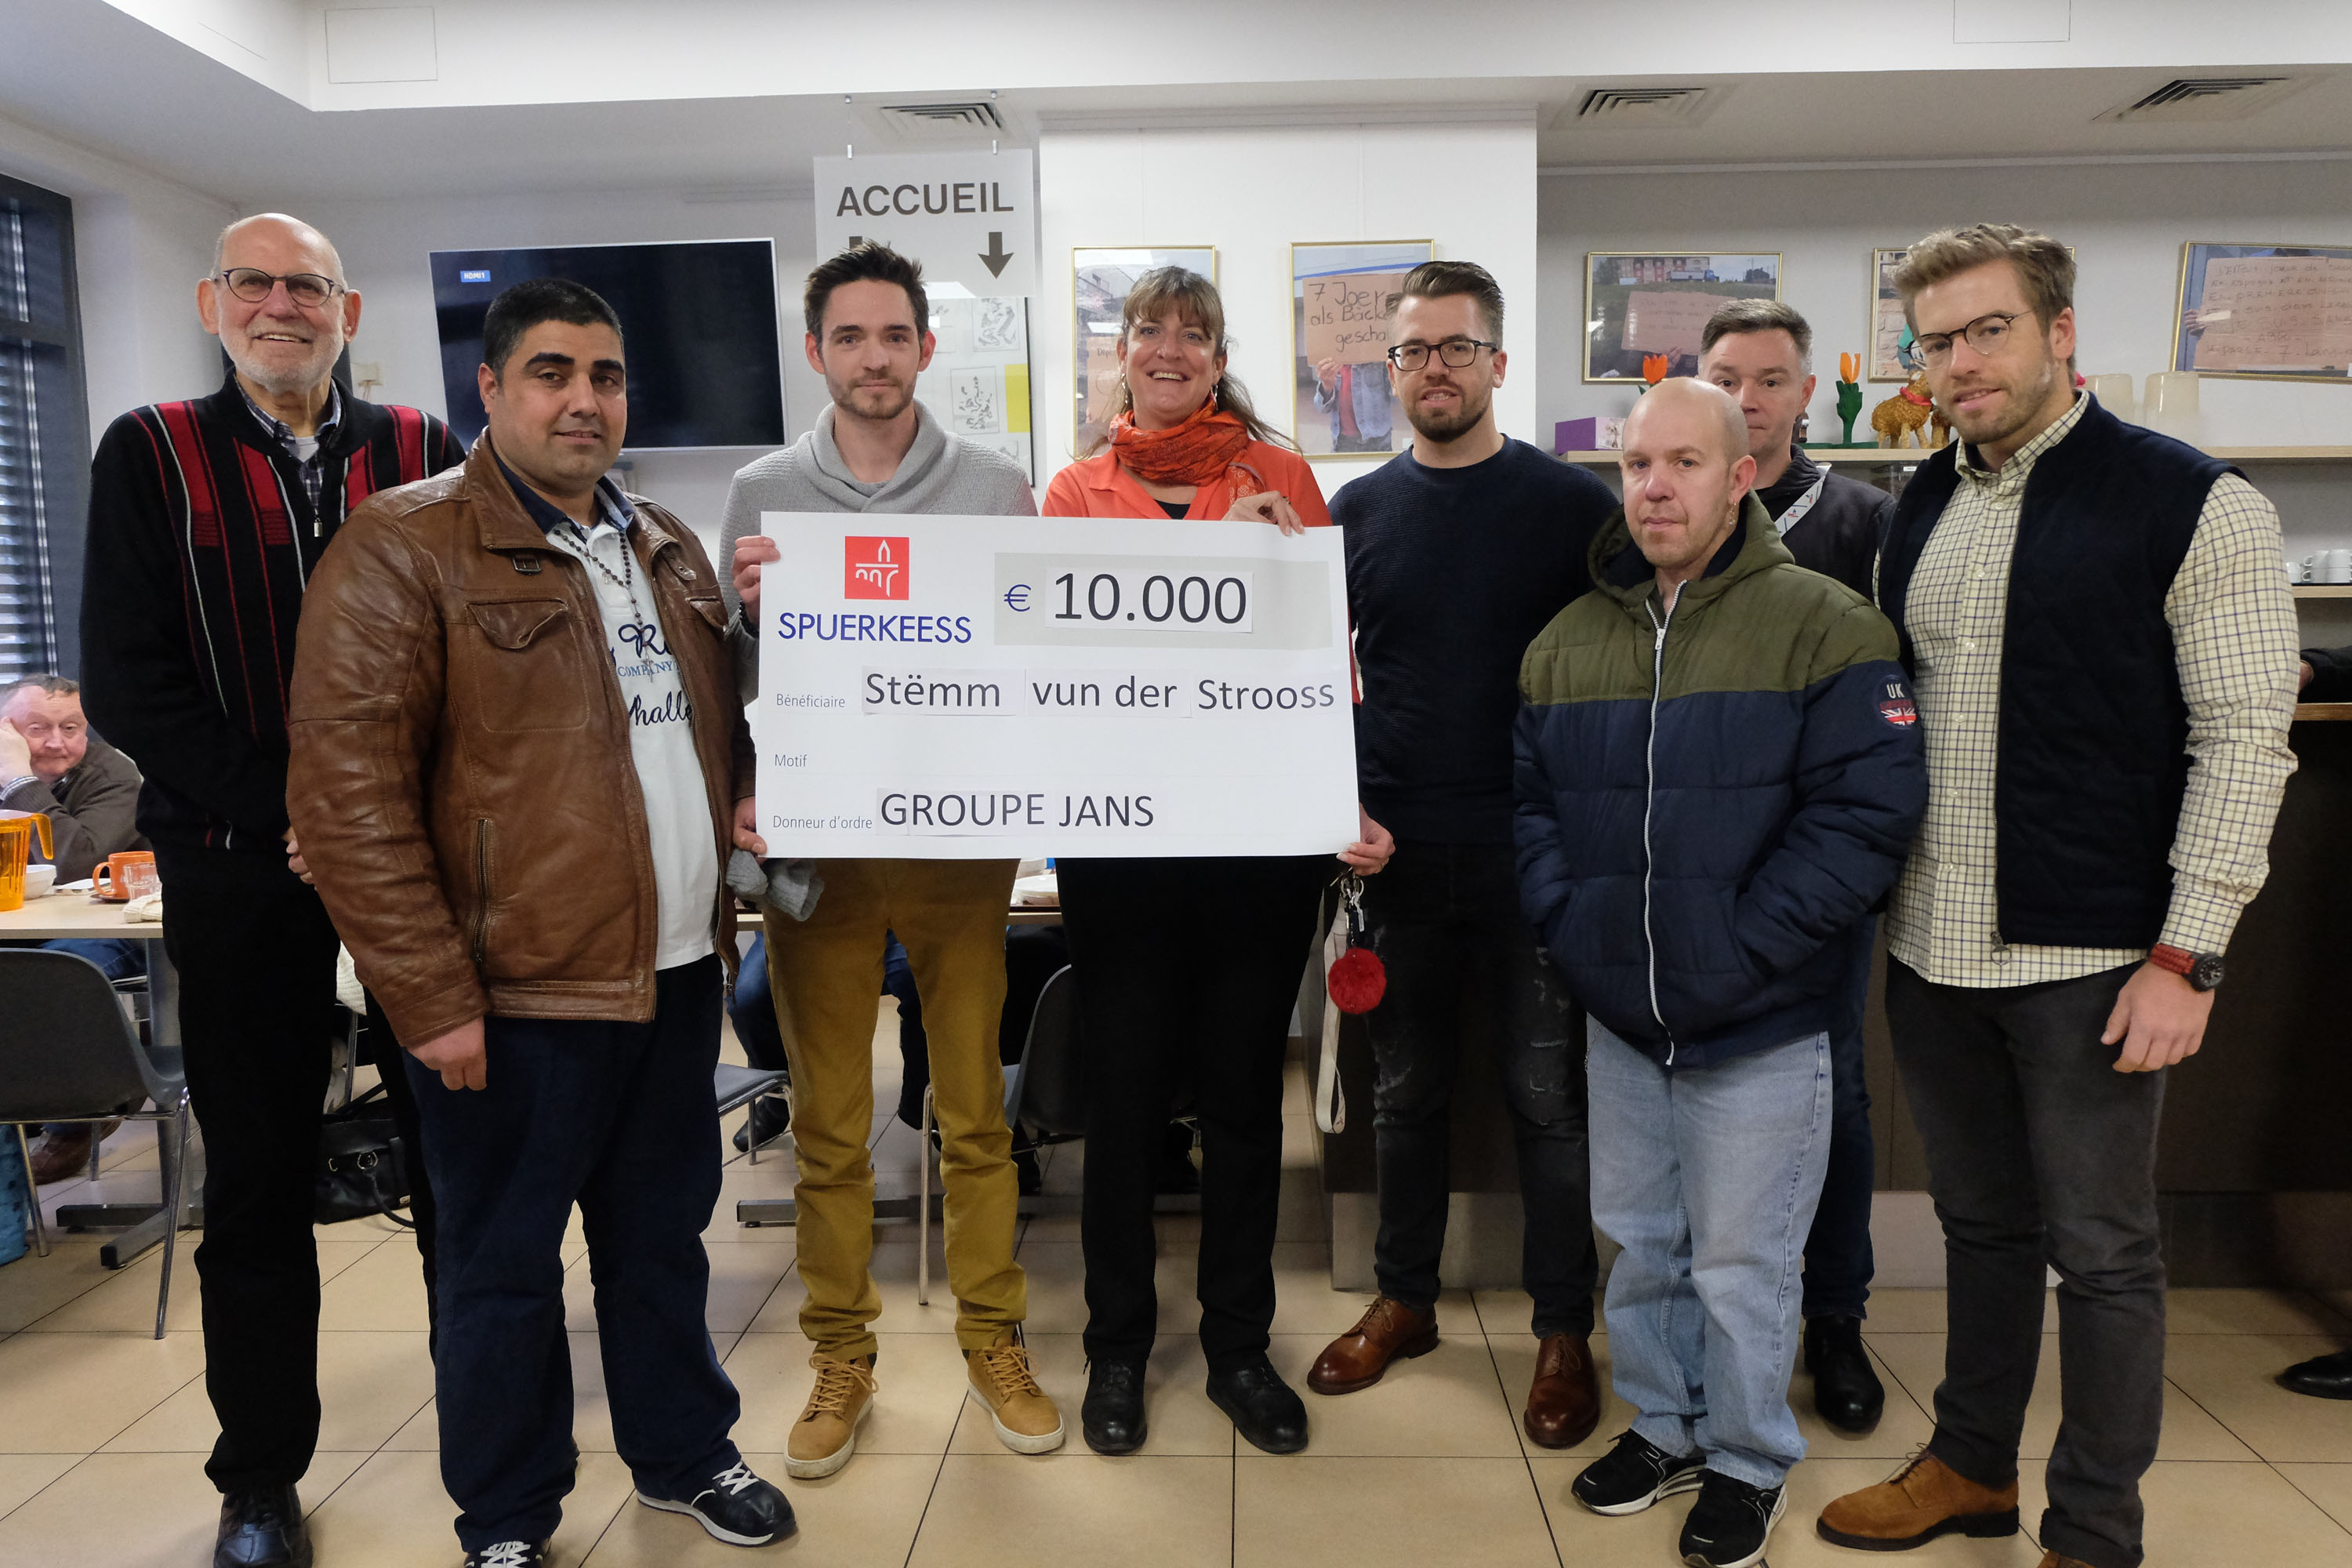 The Jans group supports Stëmm with €10,000.